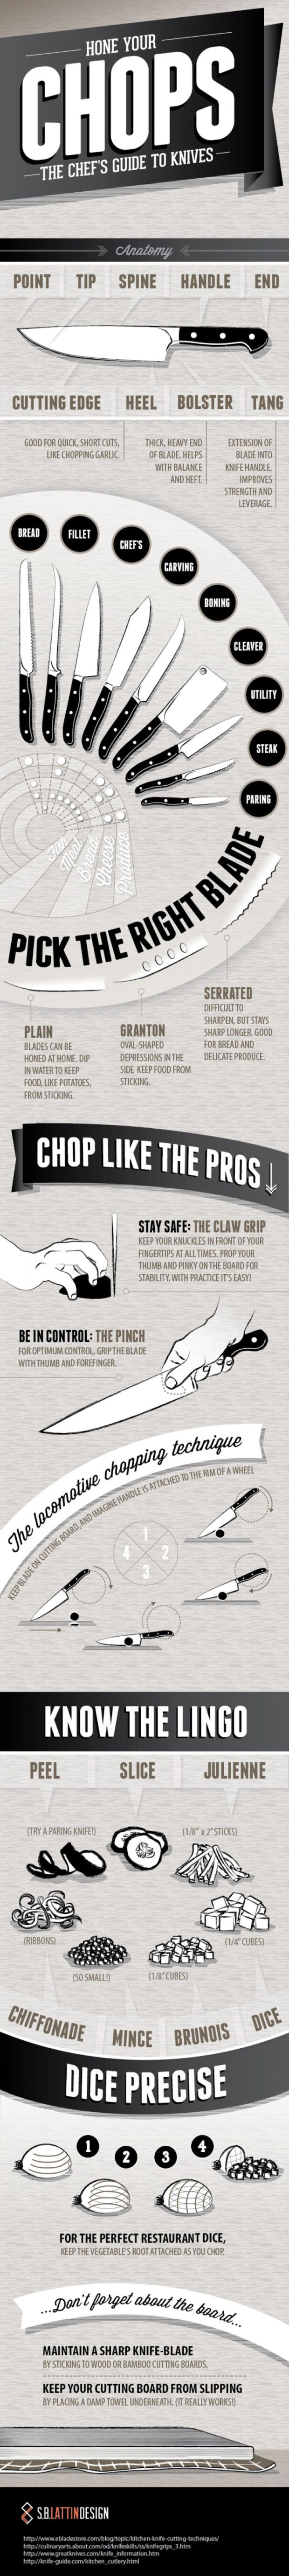 hone-your-chops-the-chefs-guide-to-knives